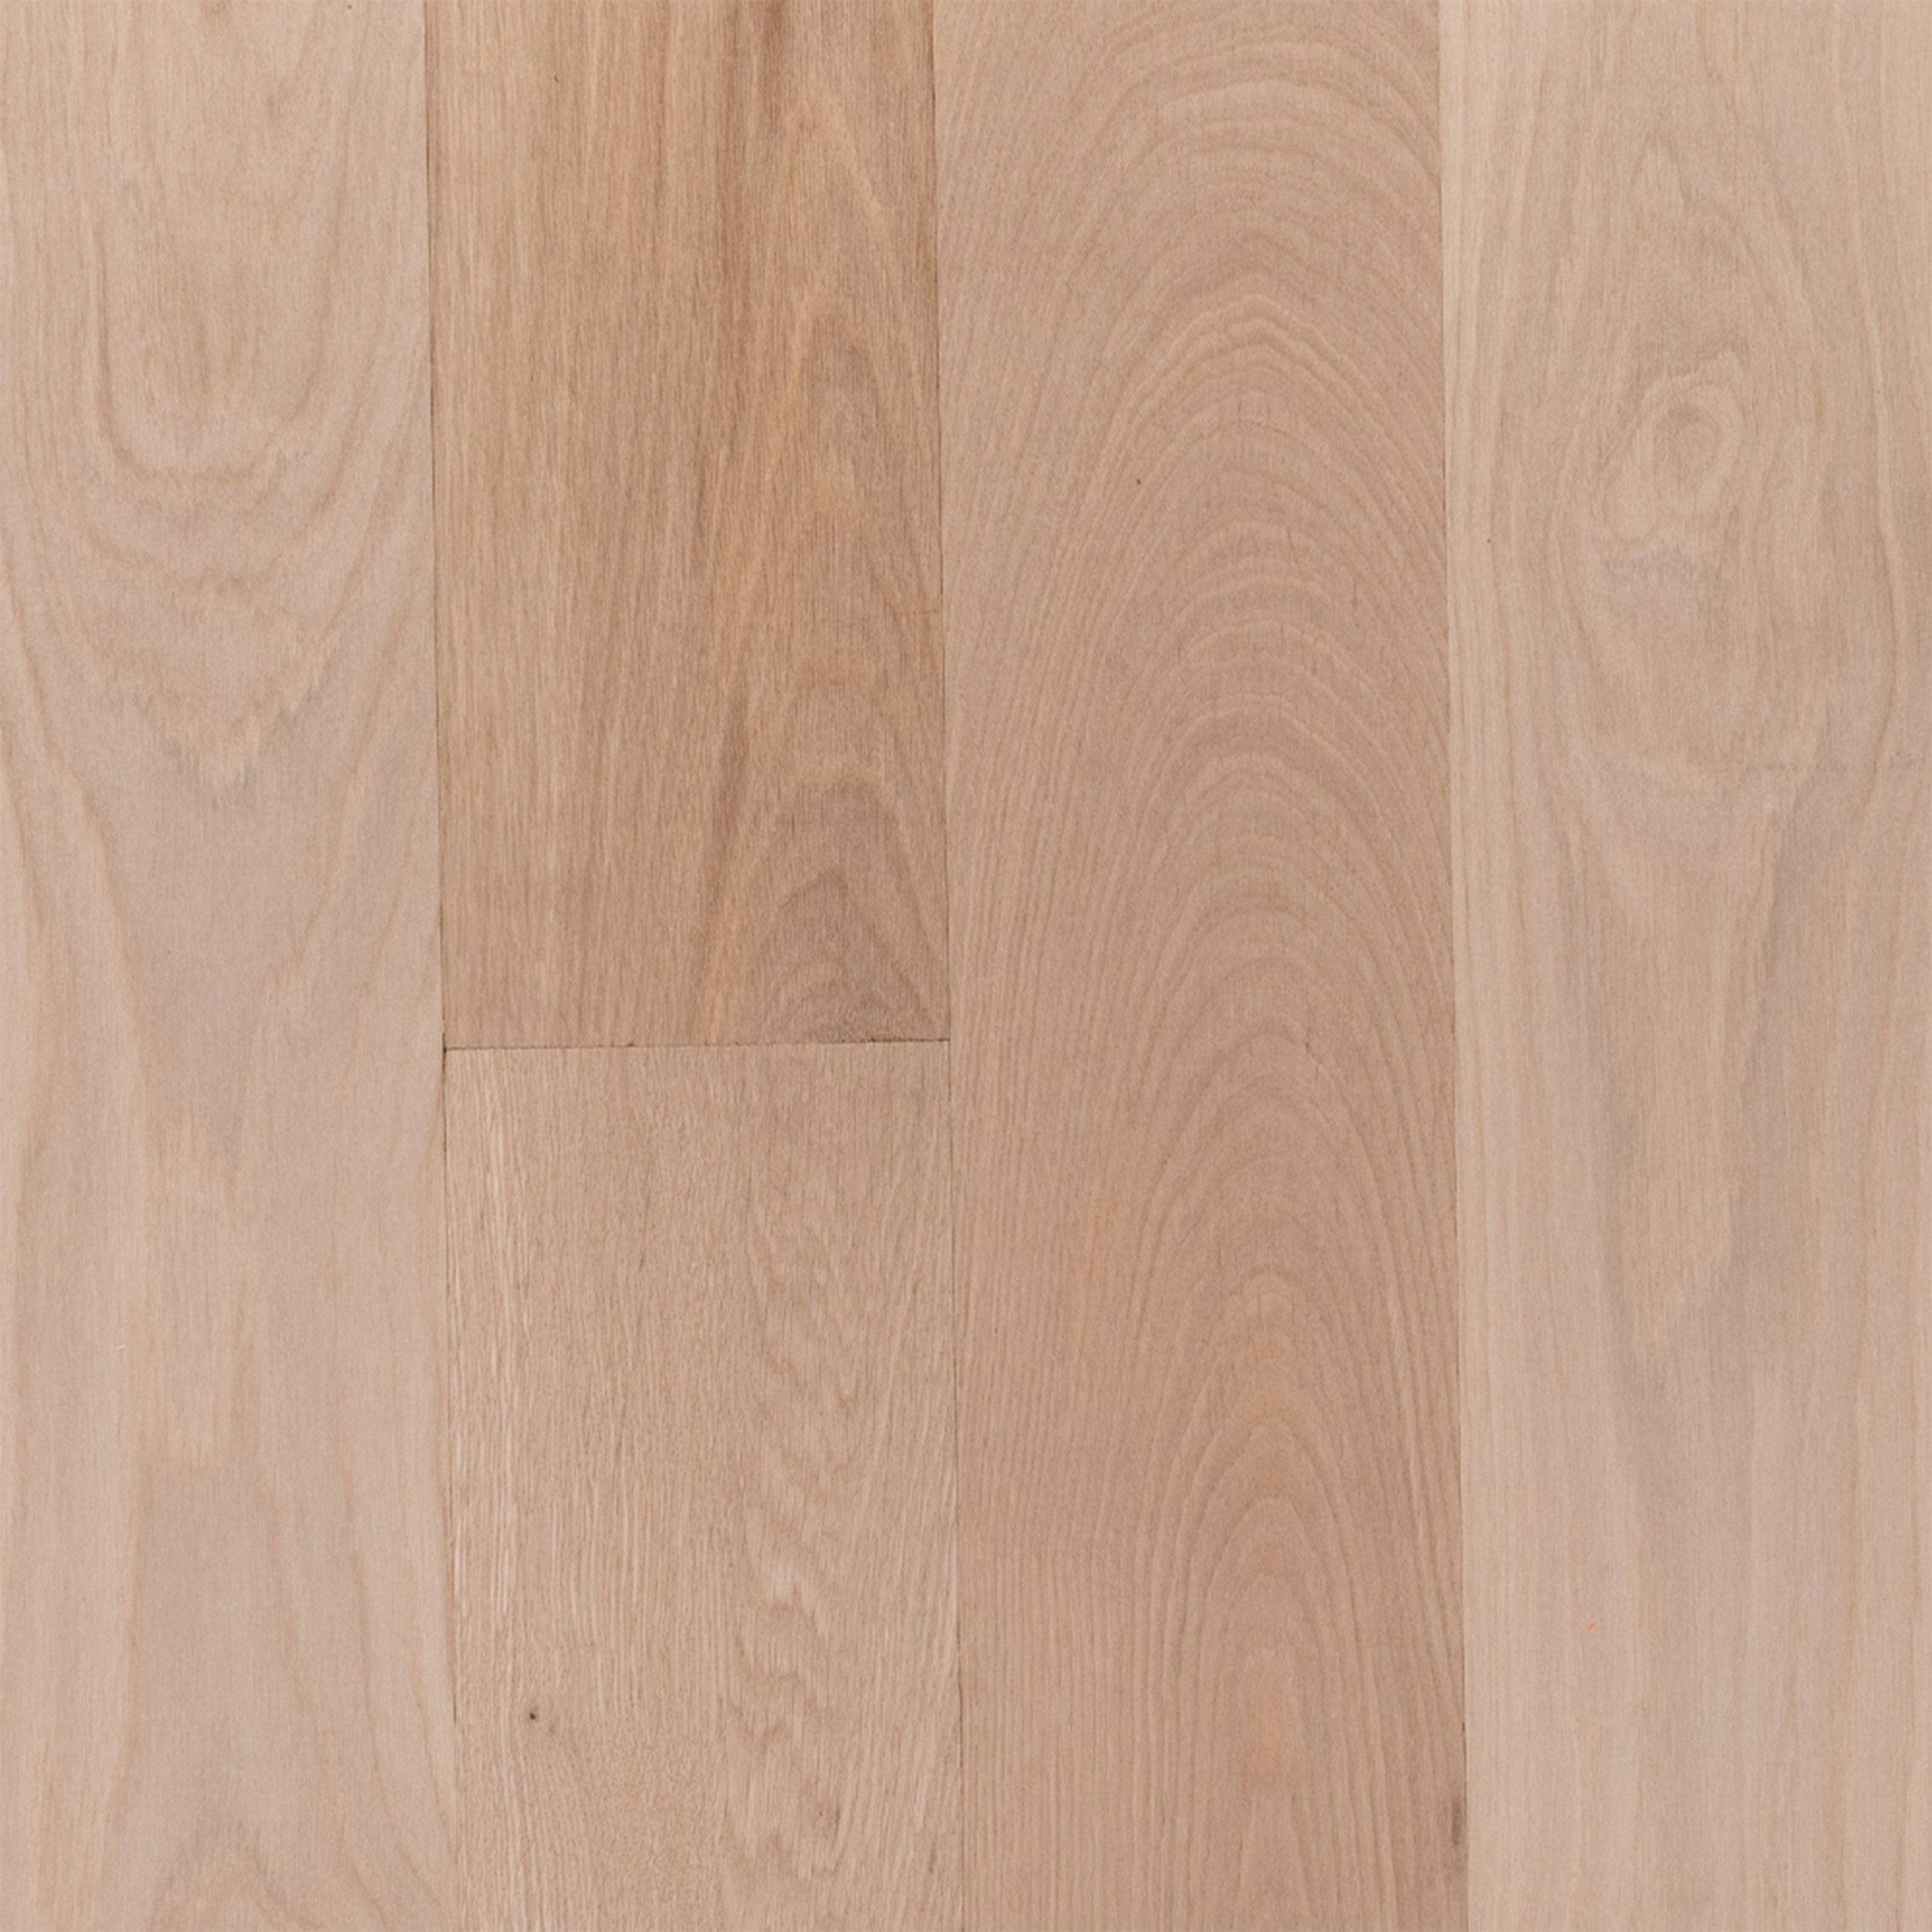 New! Unfinished White Oak Engineered Hardwood Select Grade